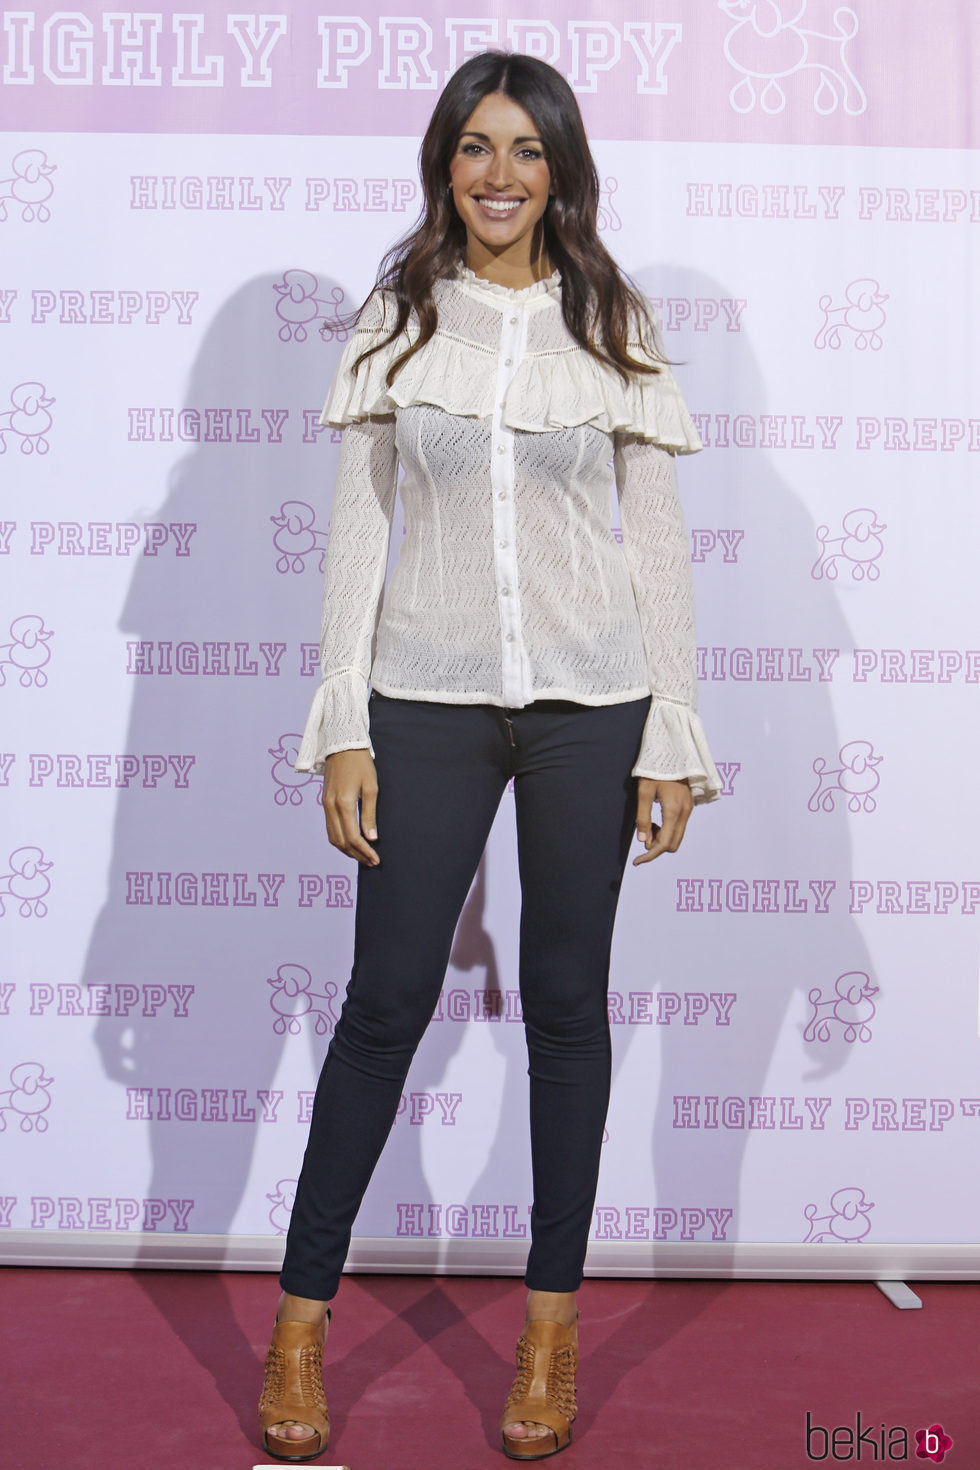 Noelia López en el desfile de Highly Preppy en la Madrid Fashion Week 2017